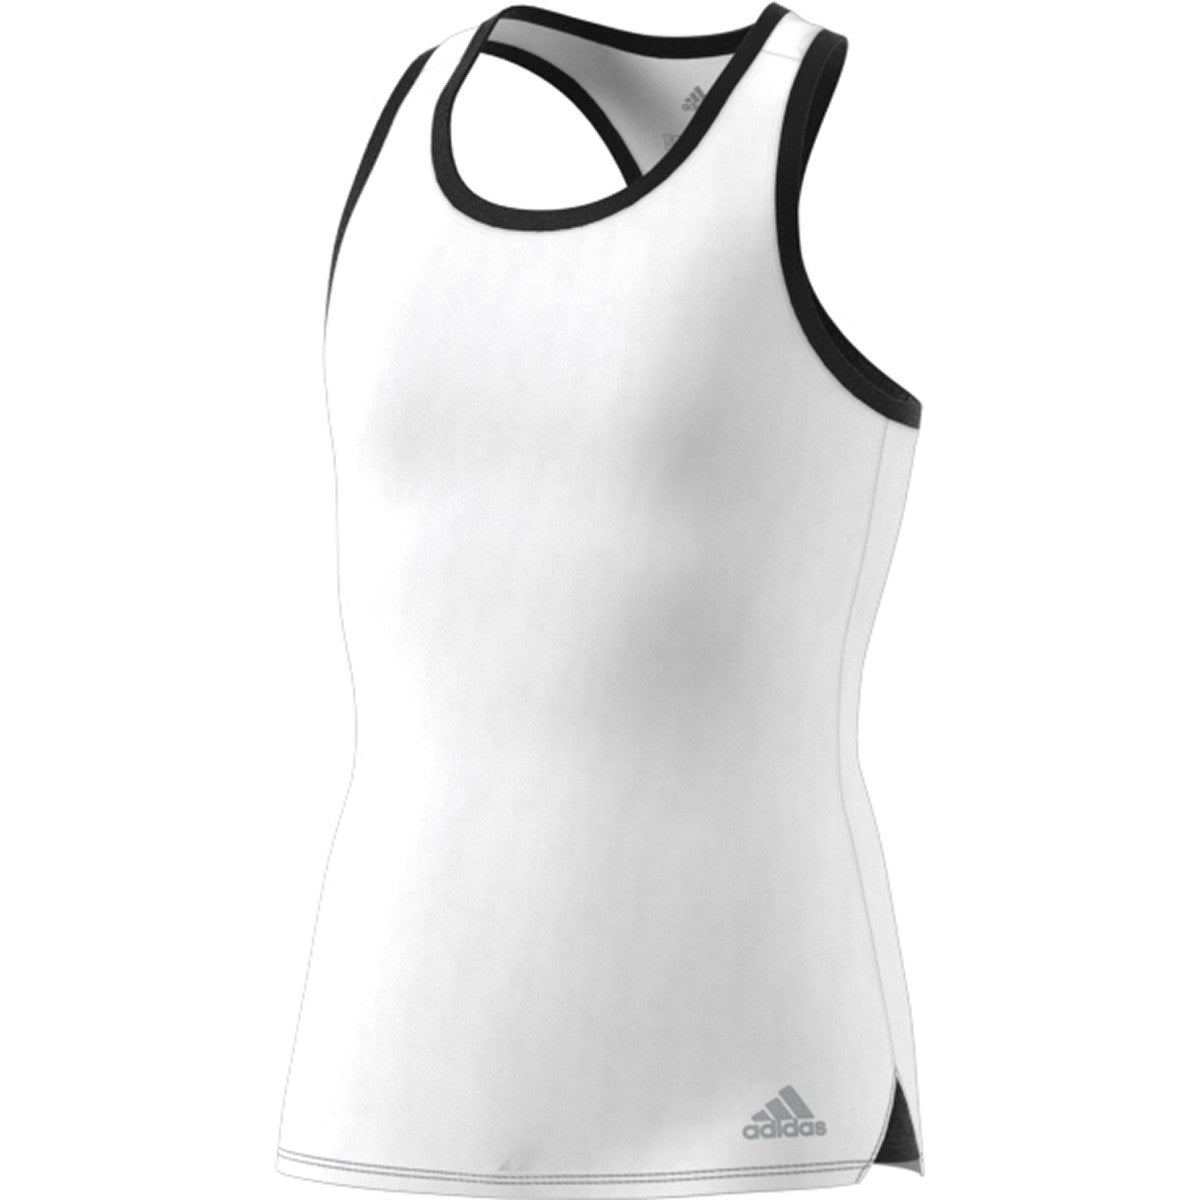 Adidas Girls Fall Tank   White